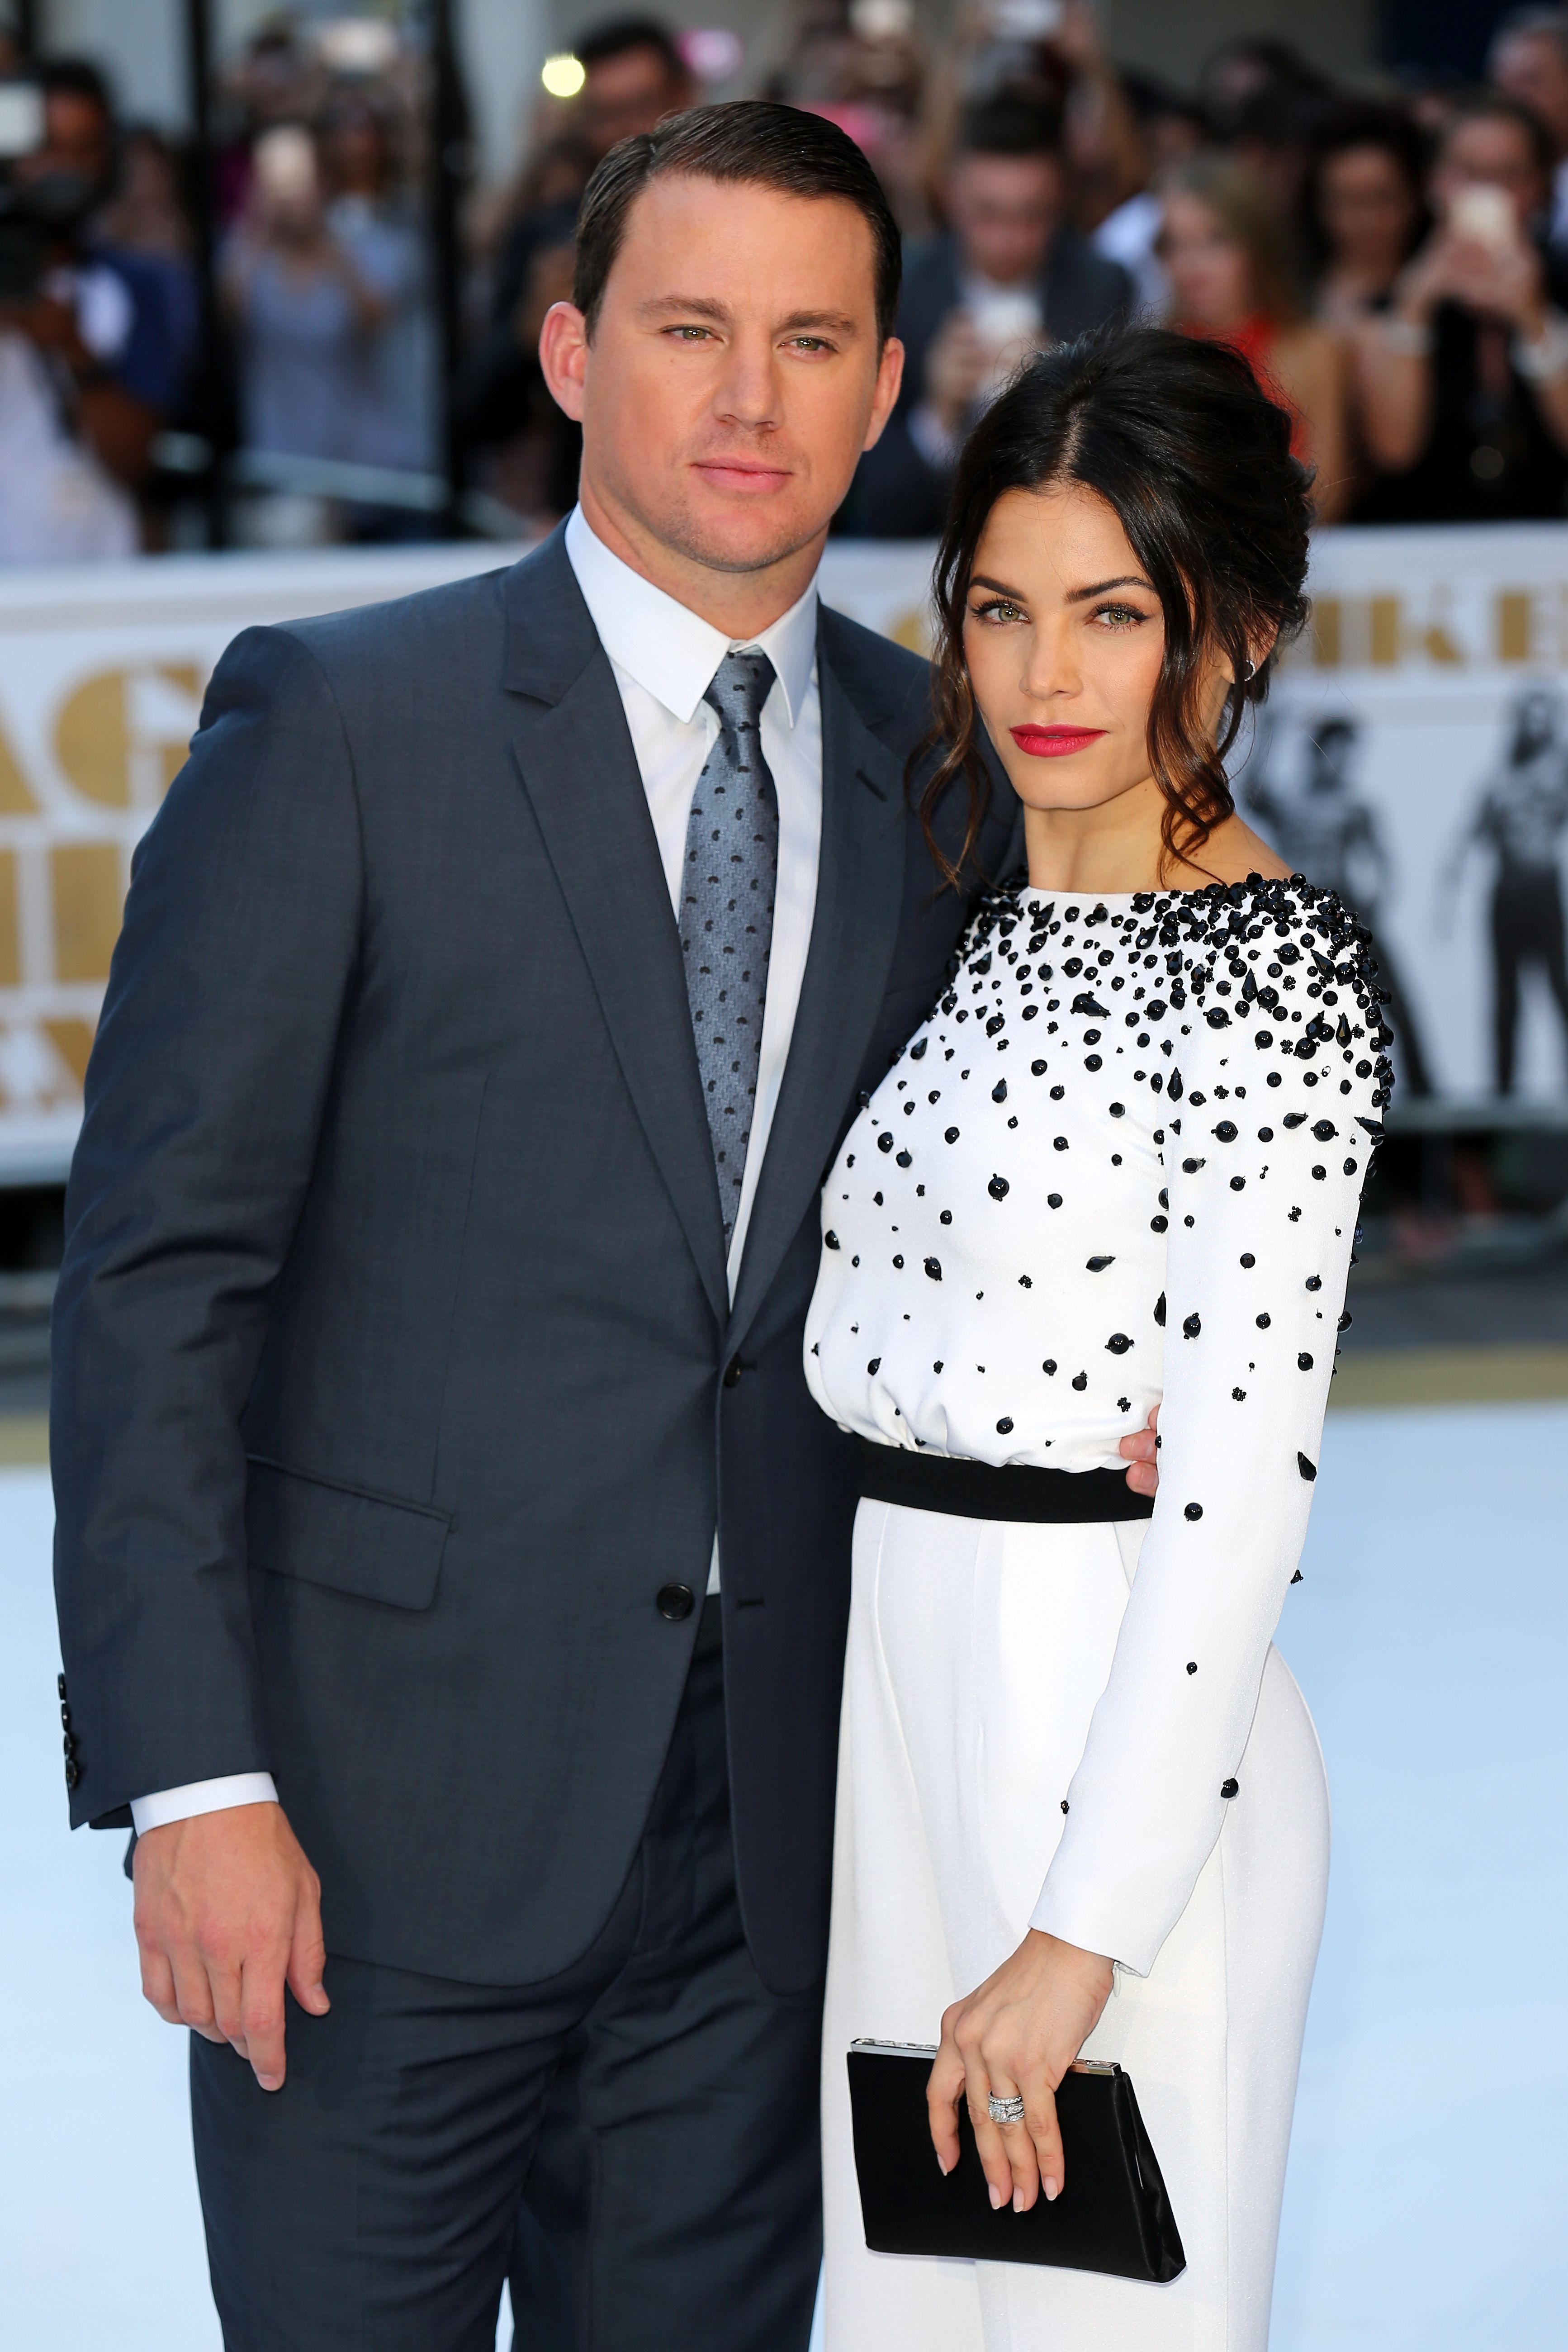 Jenna Dewan Opens Up About Channing Tatum Divorce: 'It Wasn't An Overnight Thing That Happened'